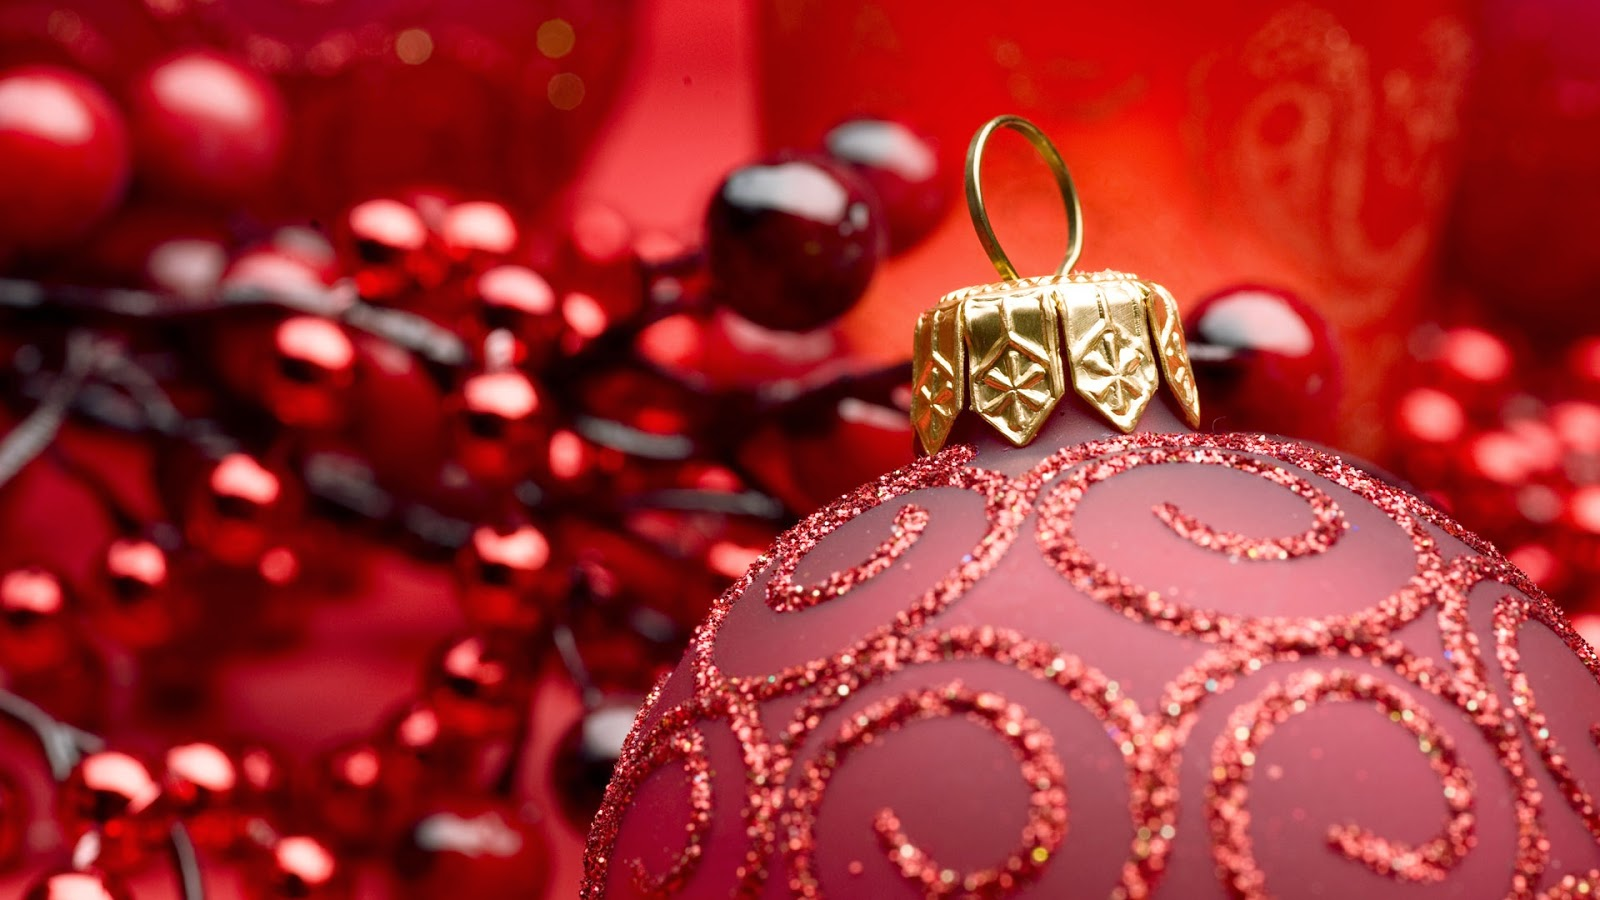 Hd Christmas Wallpaper.100 Desktop Quality Hd Wallpapers 1080p Free Download Top